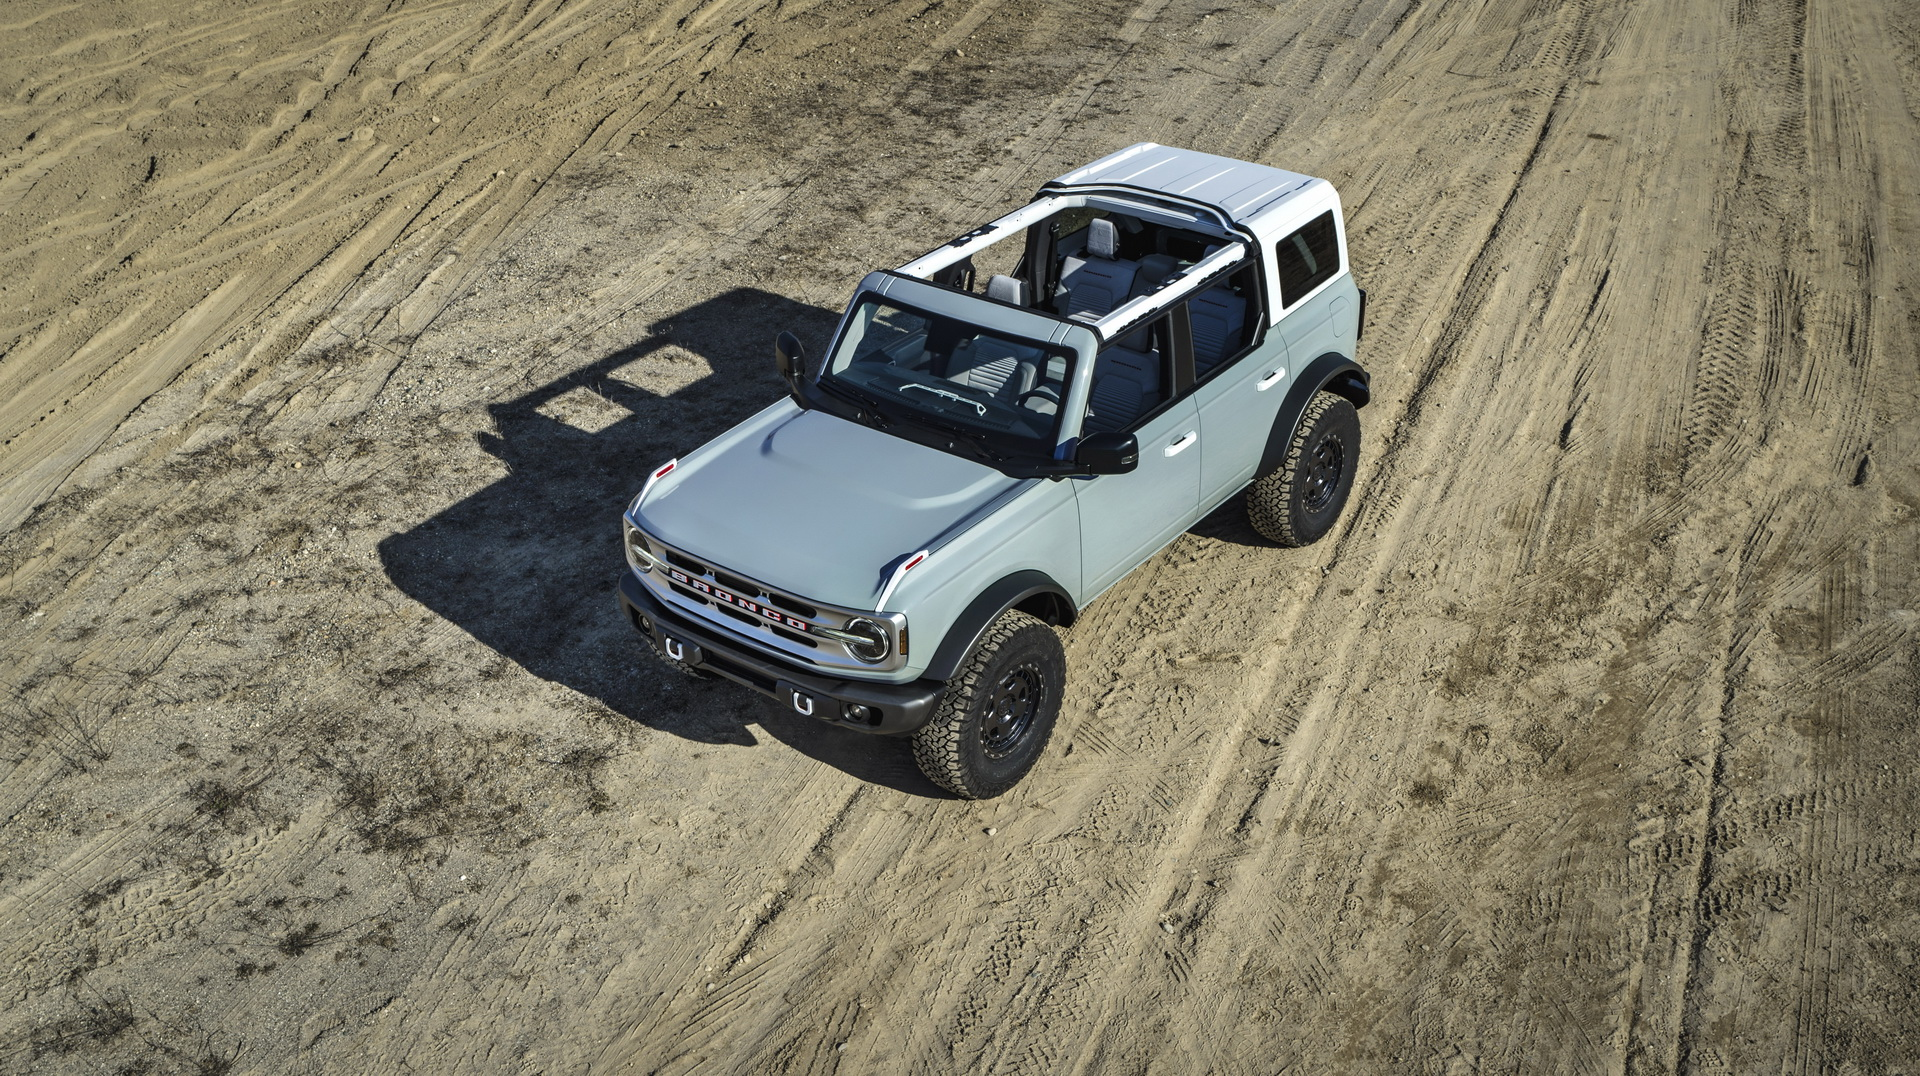 Nowy Ford Bronco (2021)